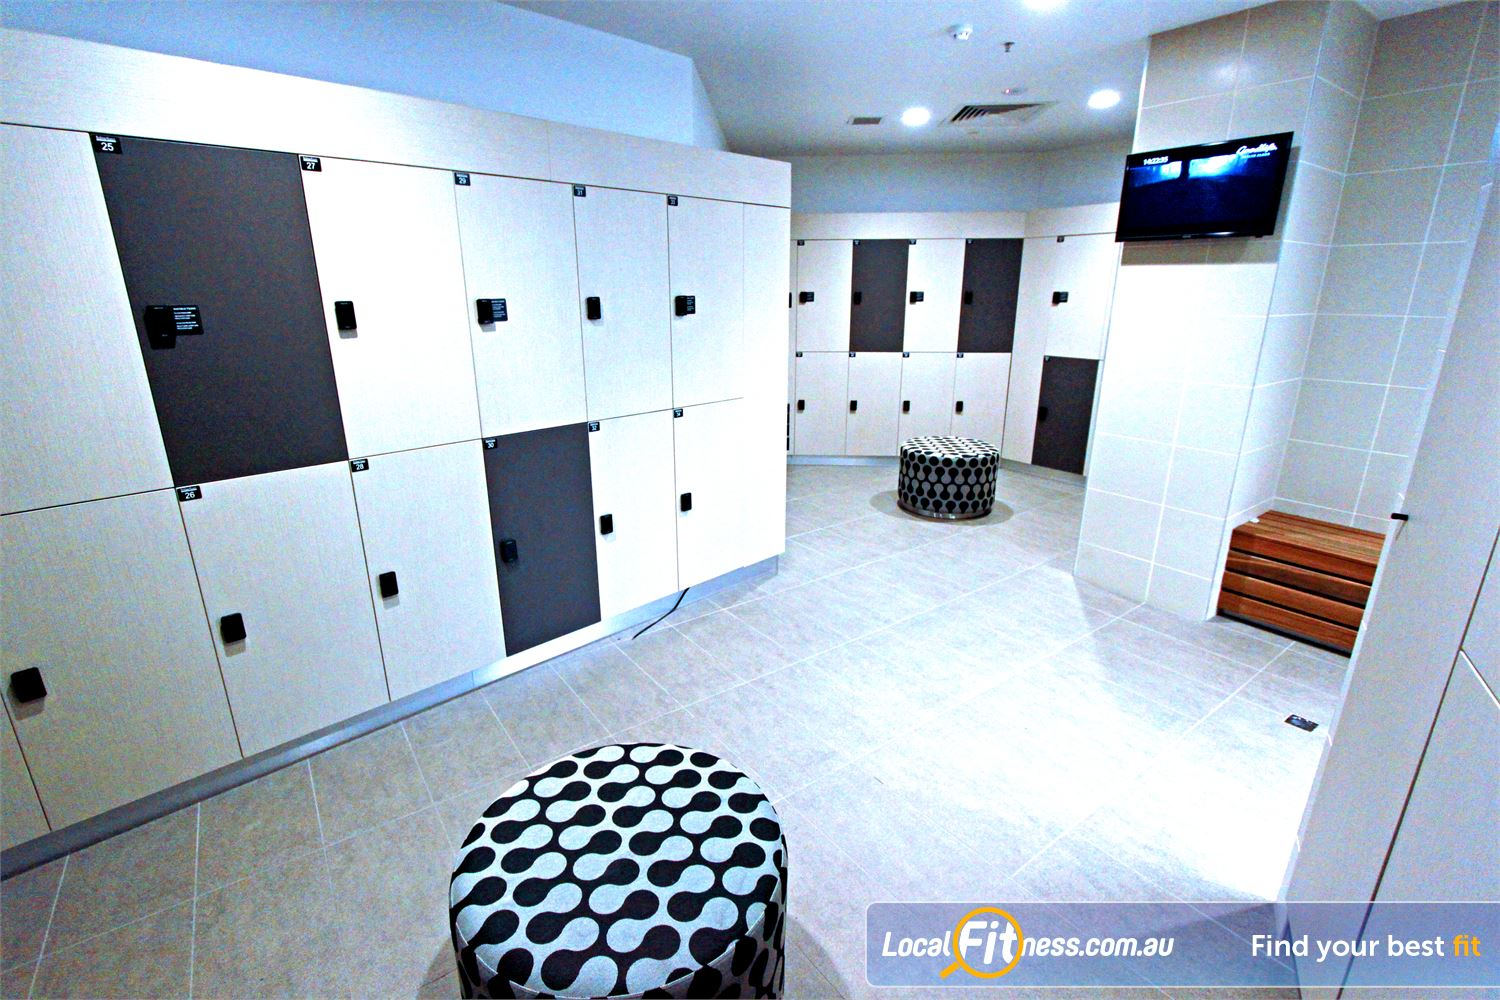 Goodlife Health Clubs Docklands Pamper yourself in the exclusive change rooms in Docklands.